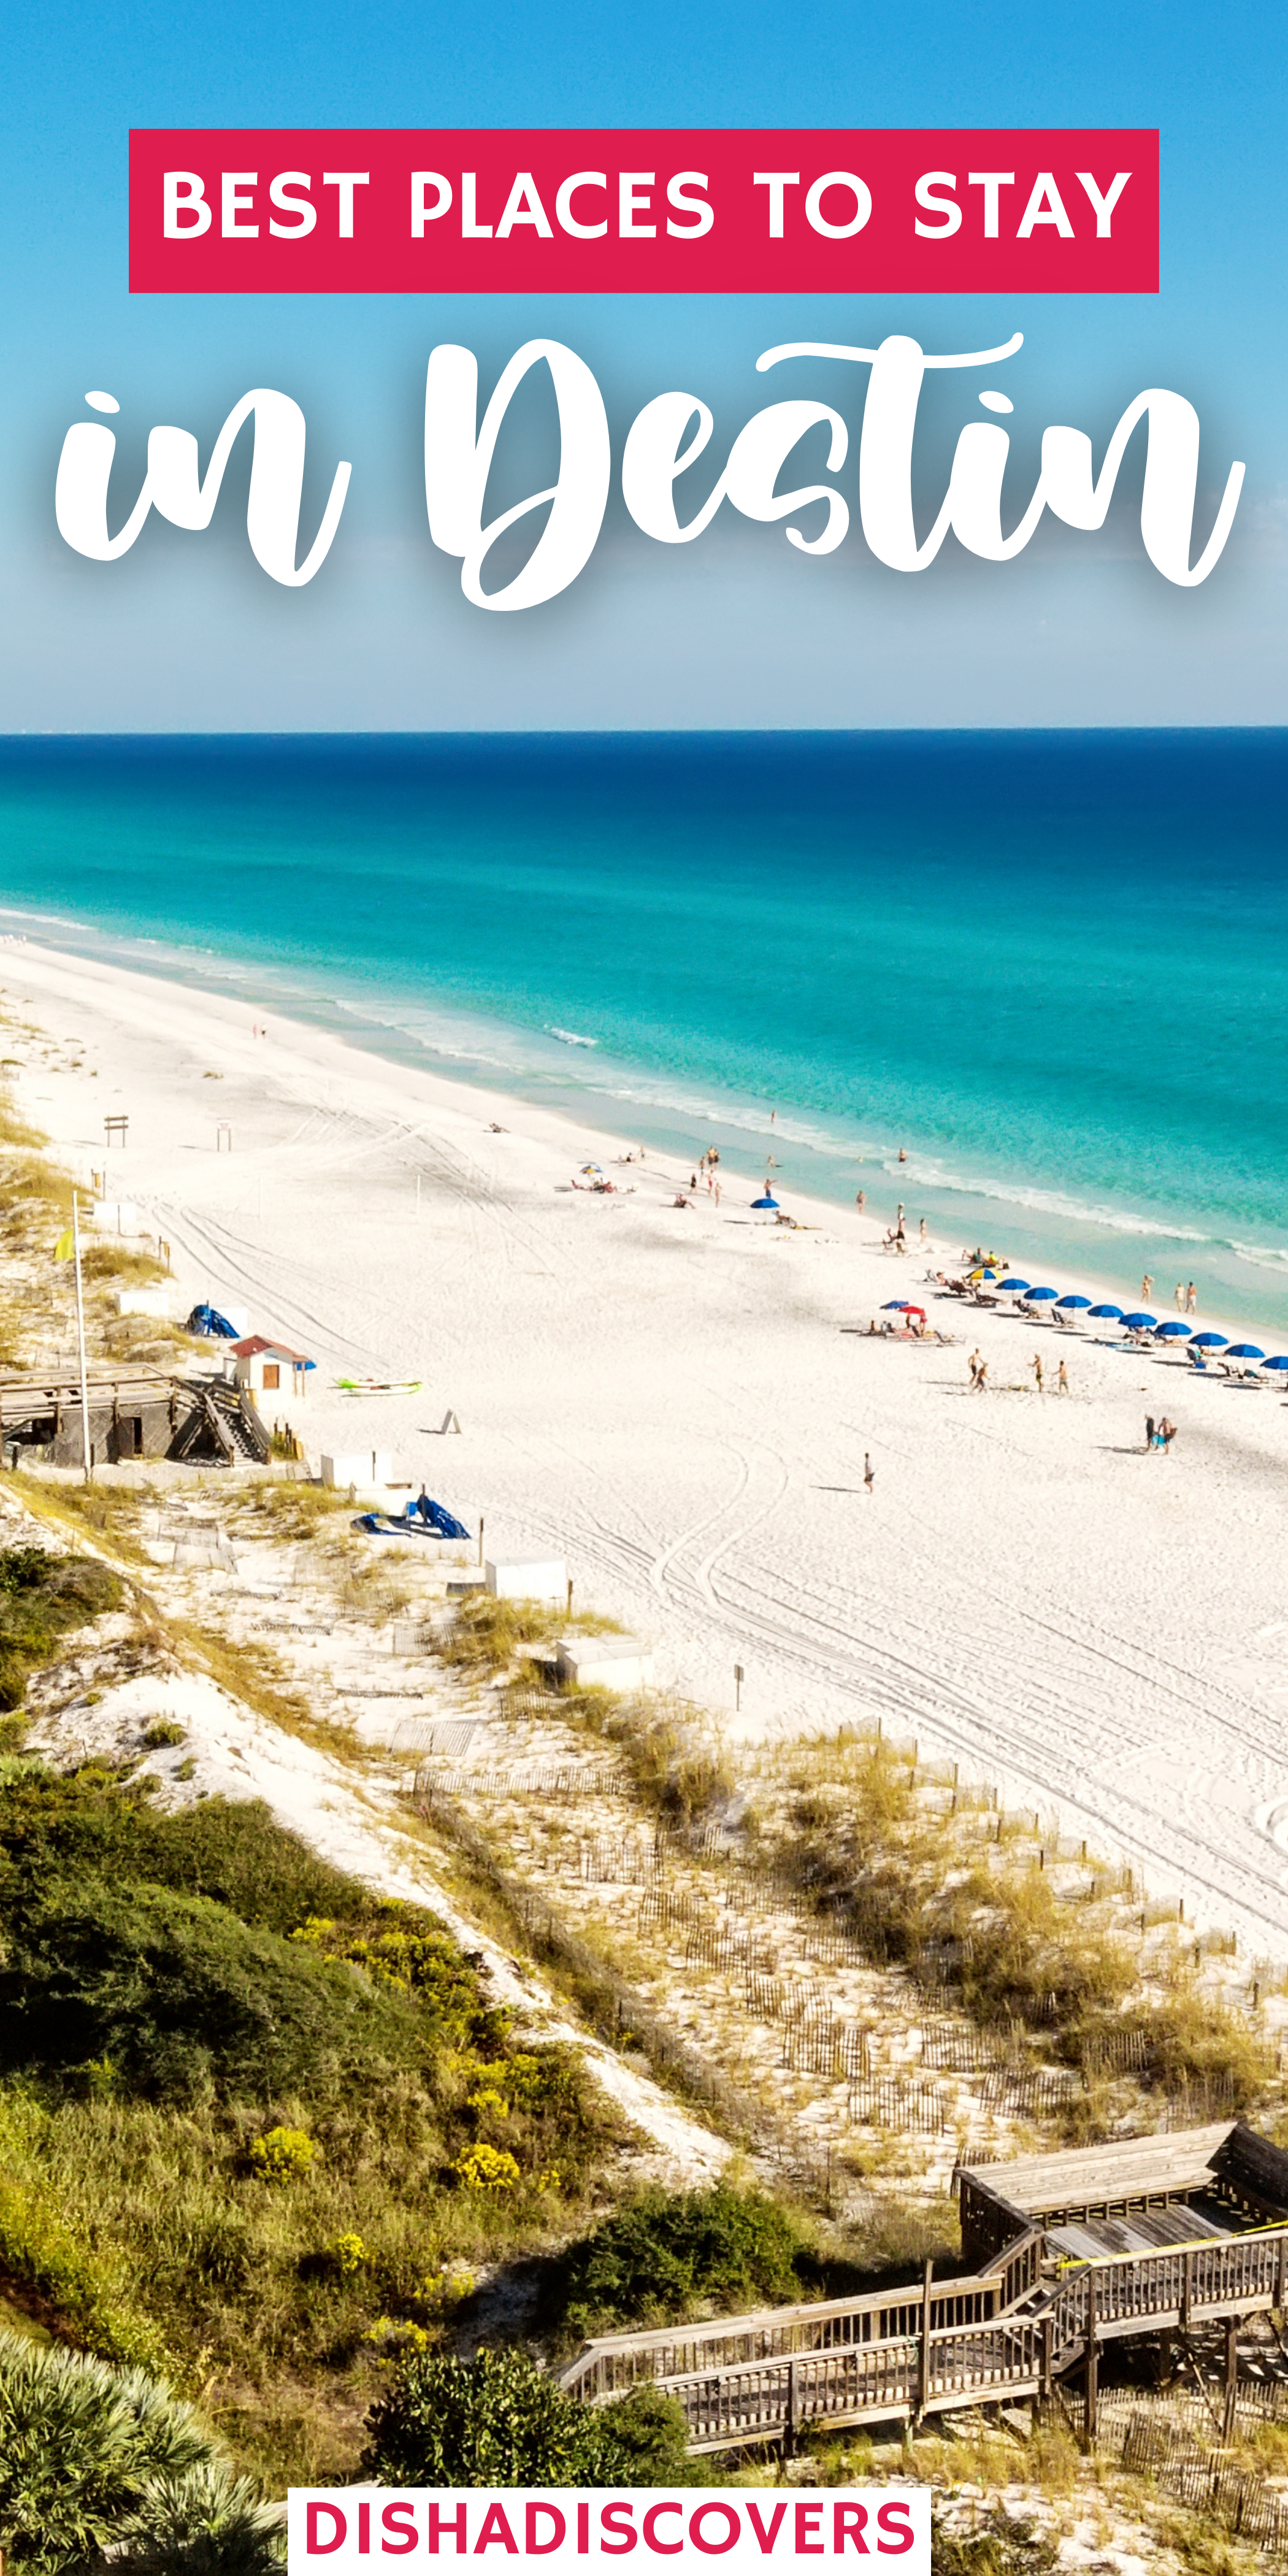 11 Stunning And Best Airbnbs In Destin Florida In 2021 Romantic Beach Vacations Florida Travel Florida Honeymoon